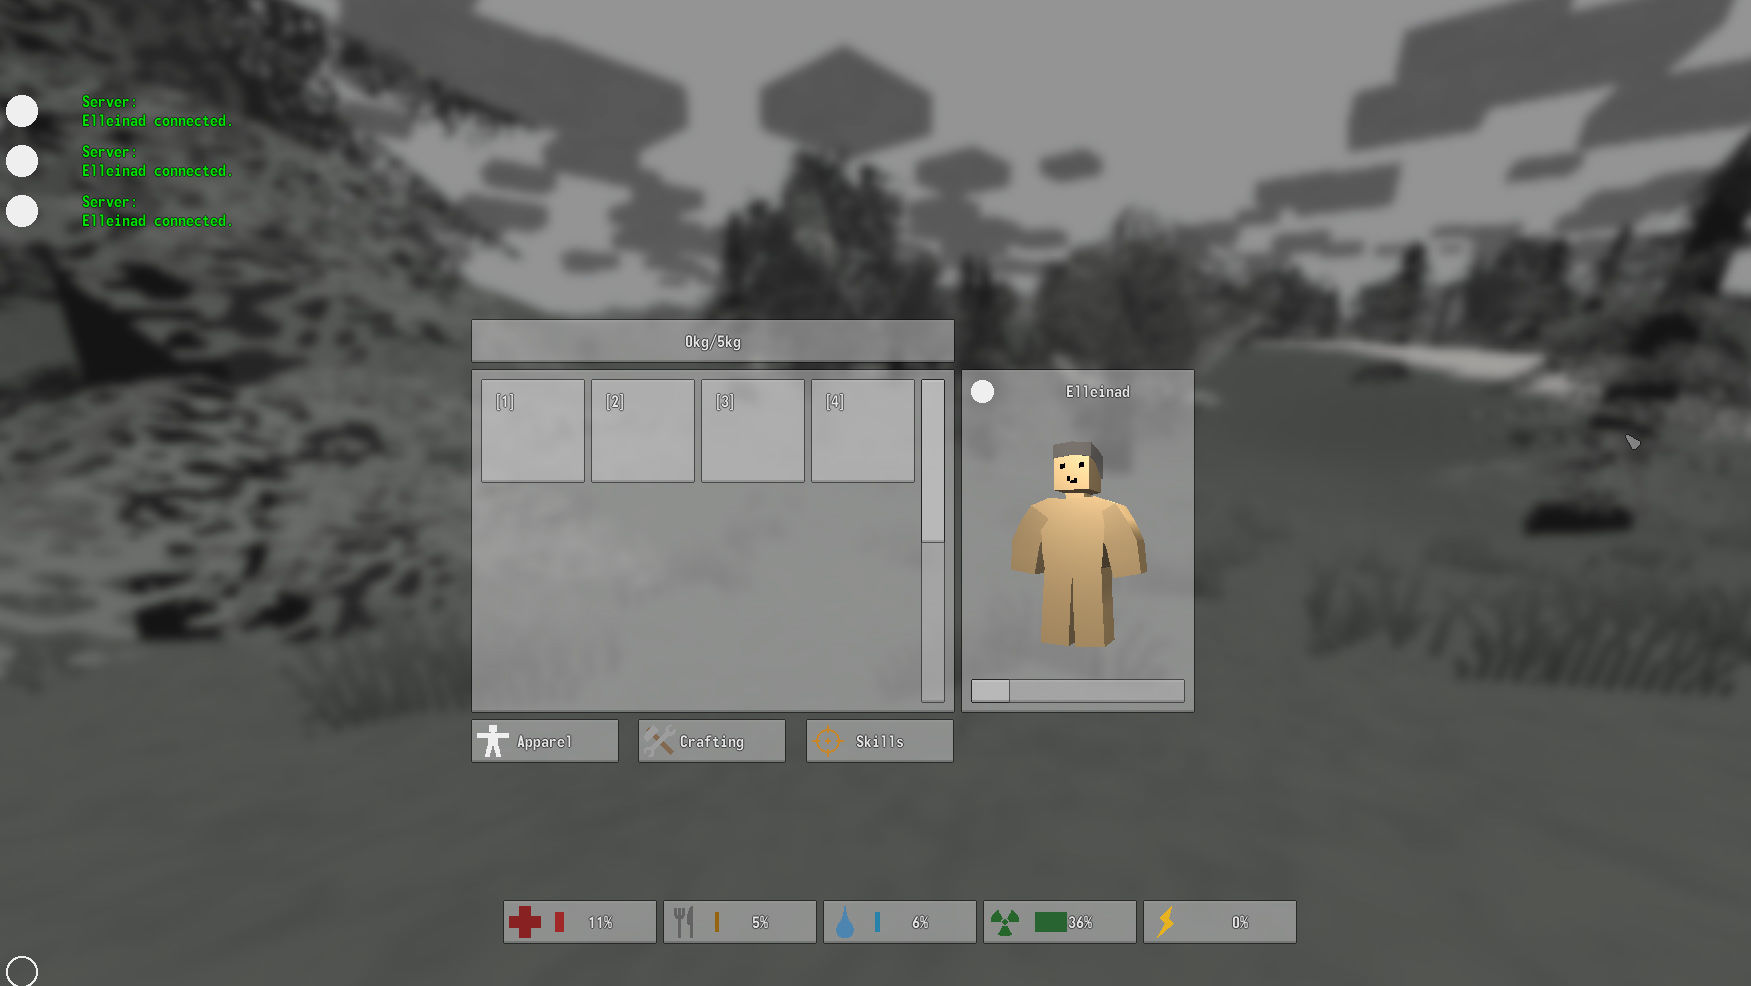 unturned how to give yourself items